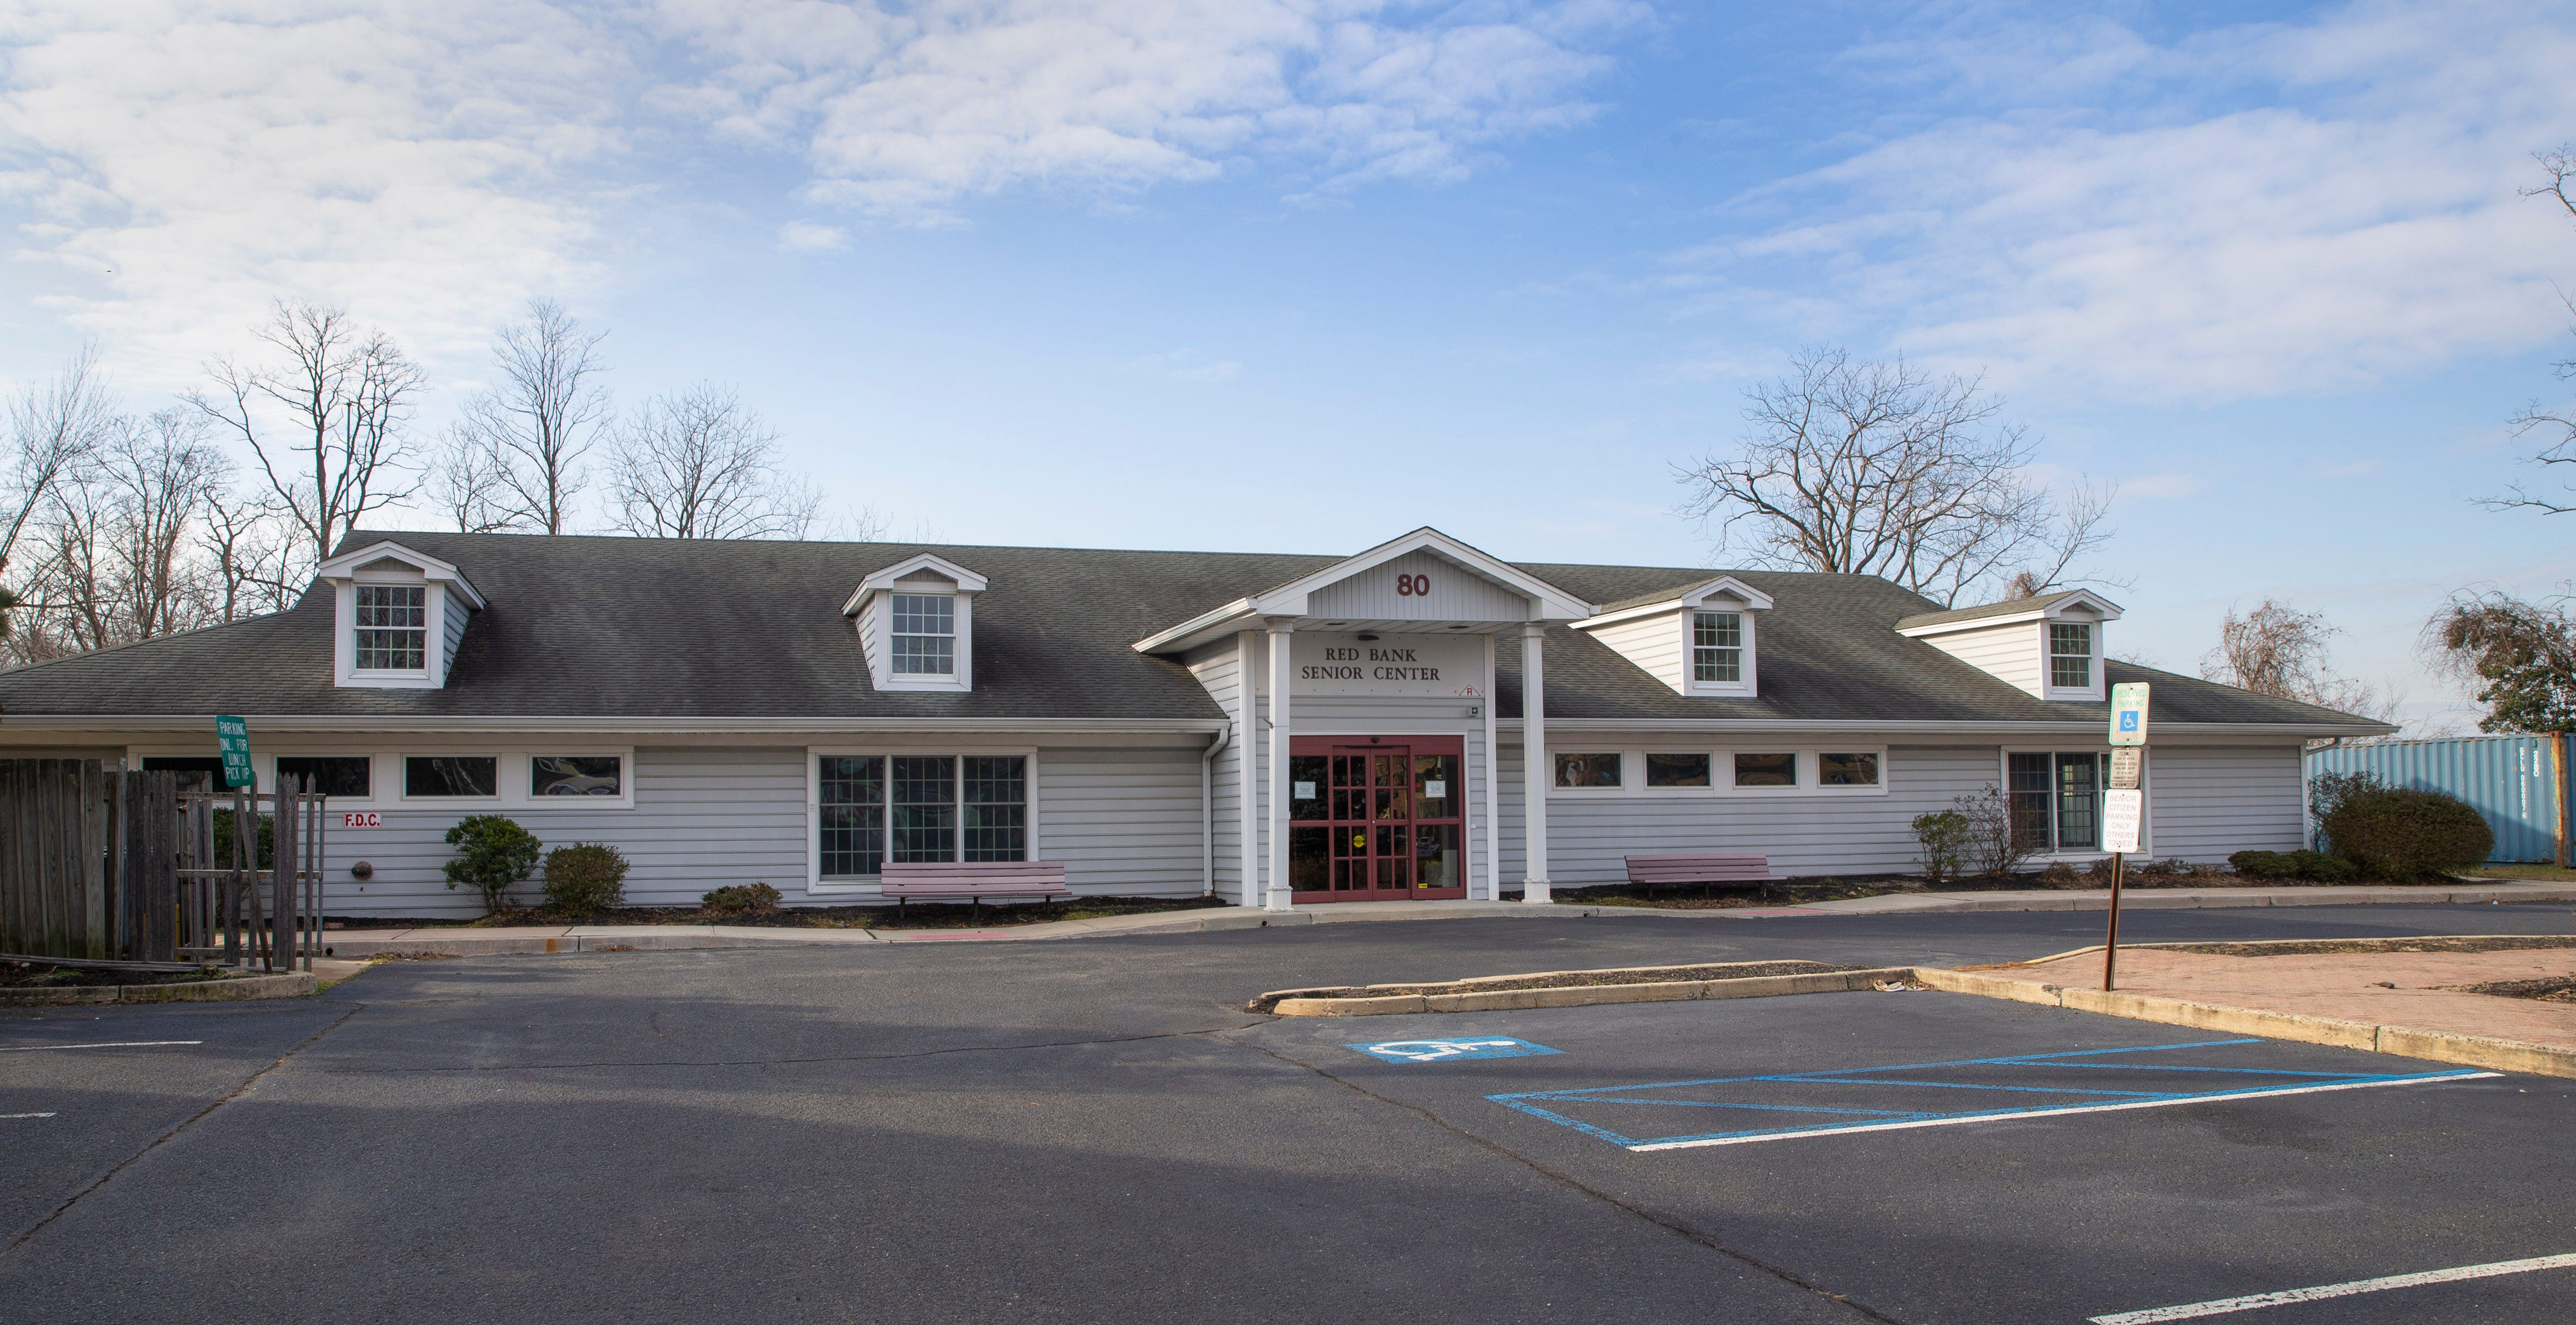 Red Bank Senior Center's future is uncertain